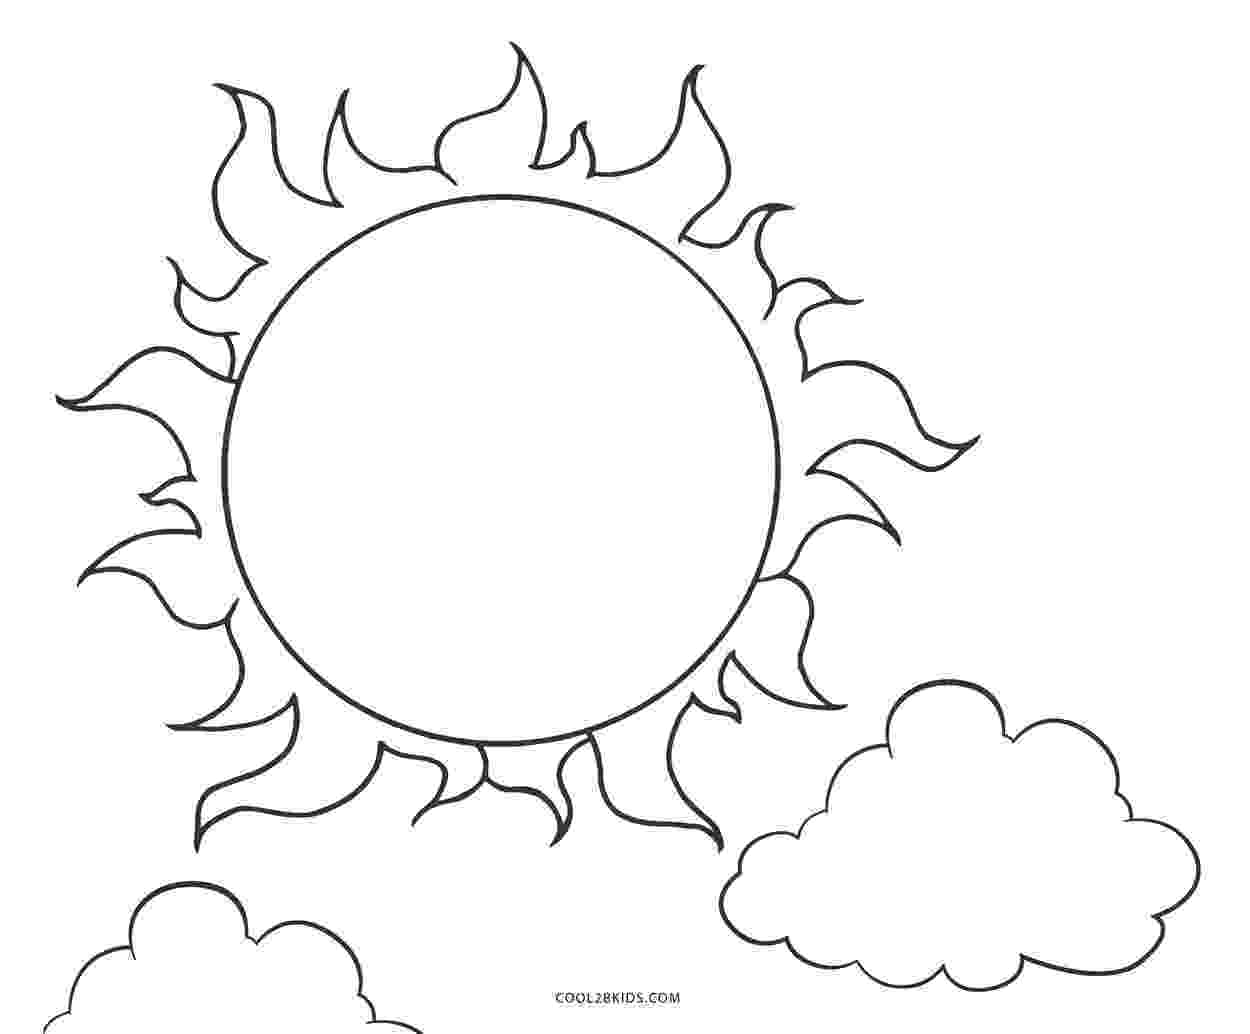 coloring book sun free printable sun coloring pages for kids cool2bkids book coloring sun